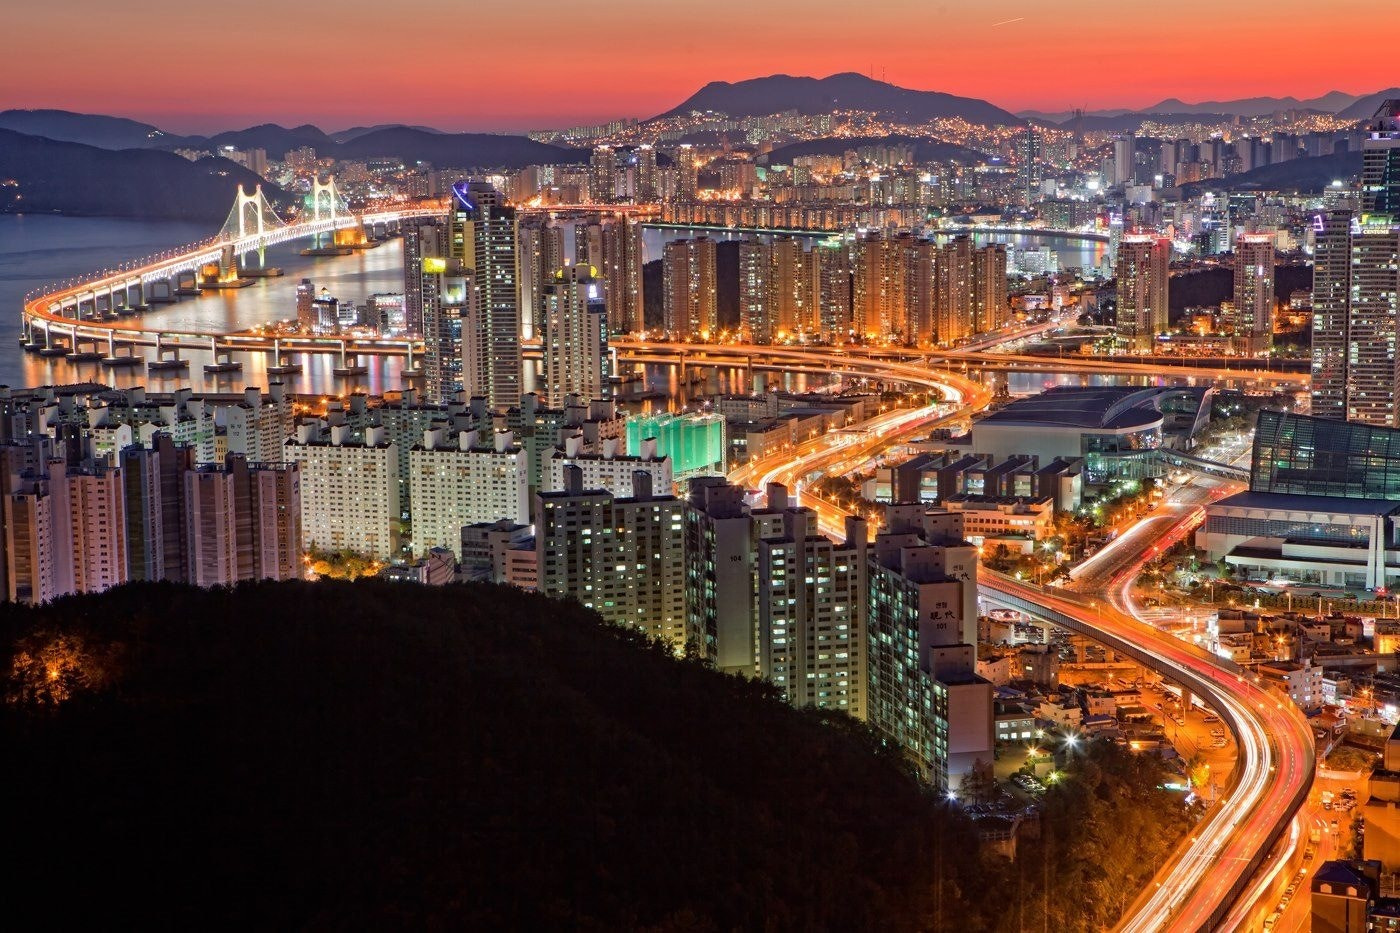 Photograph Nightview in Busan by Sky Choi on 500px